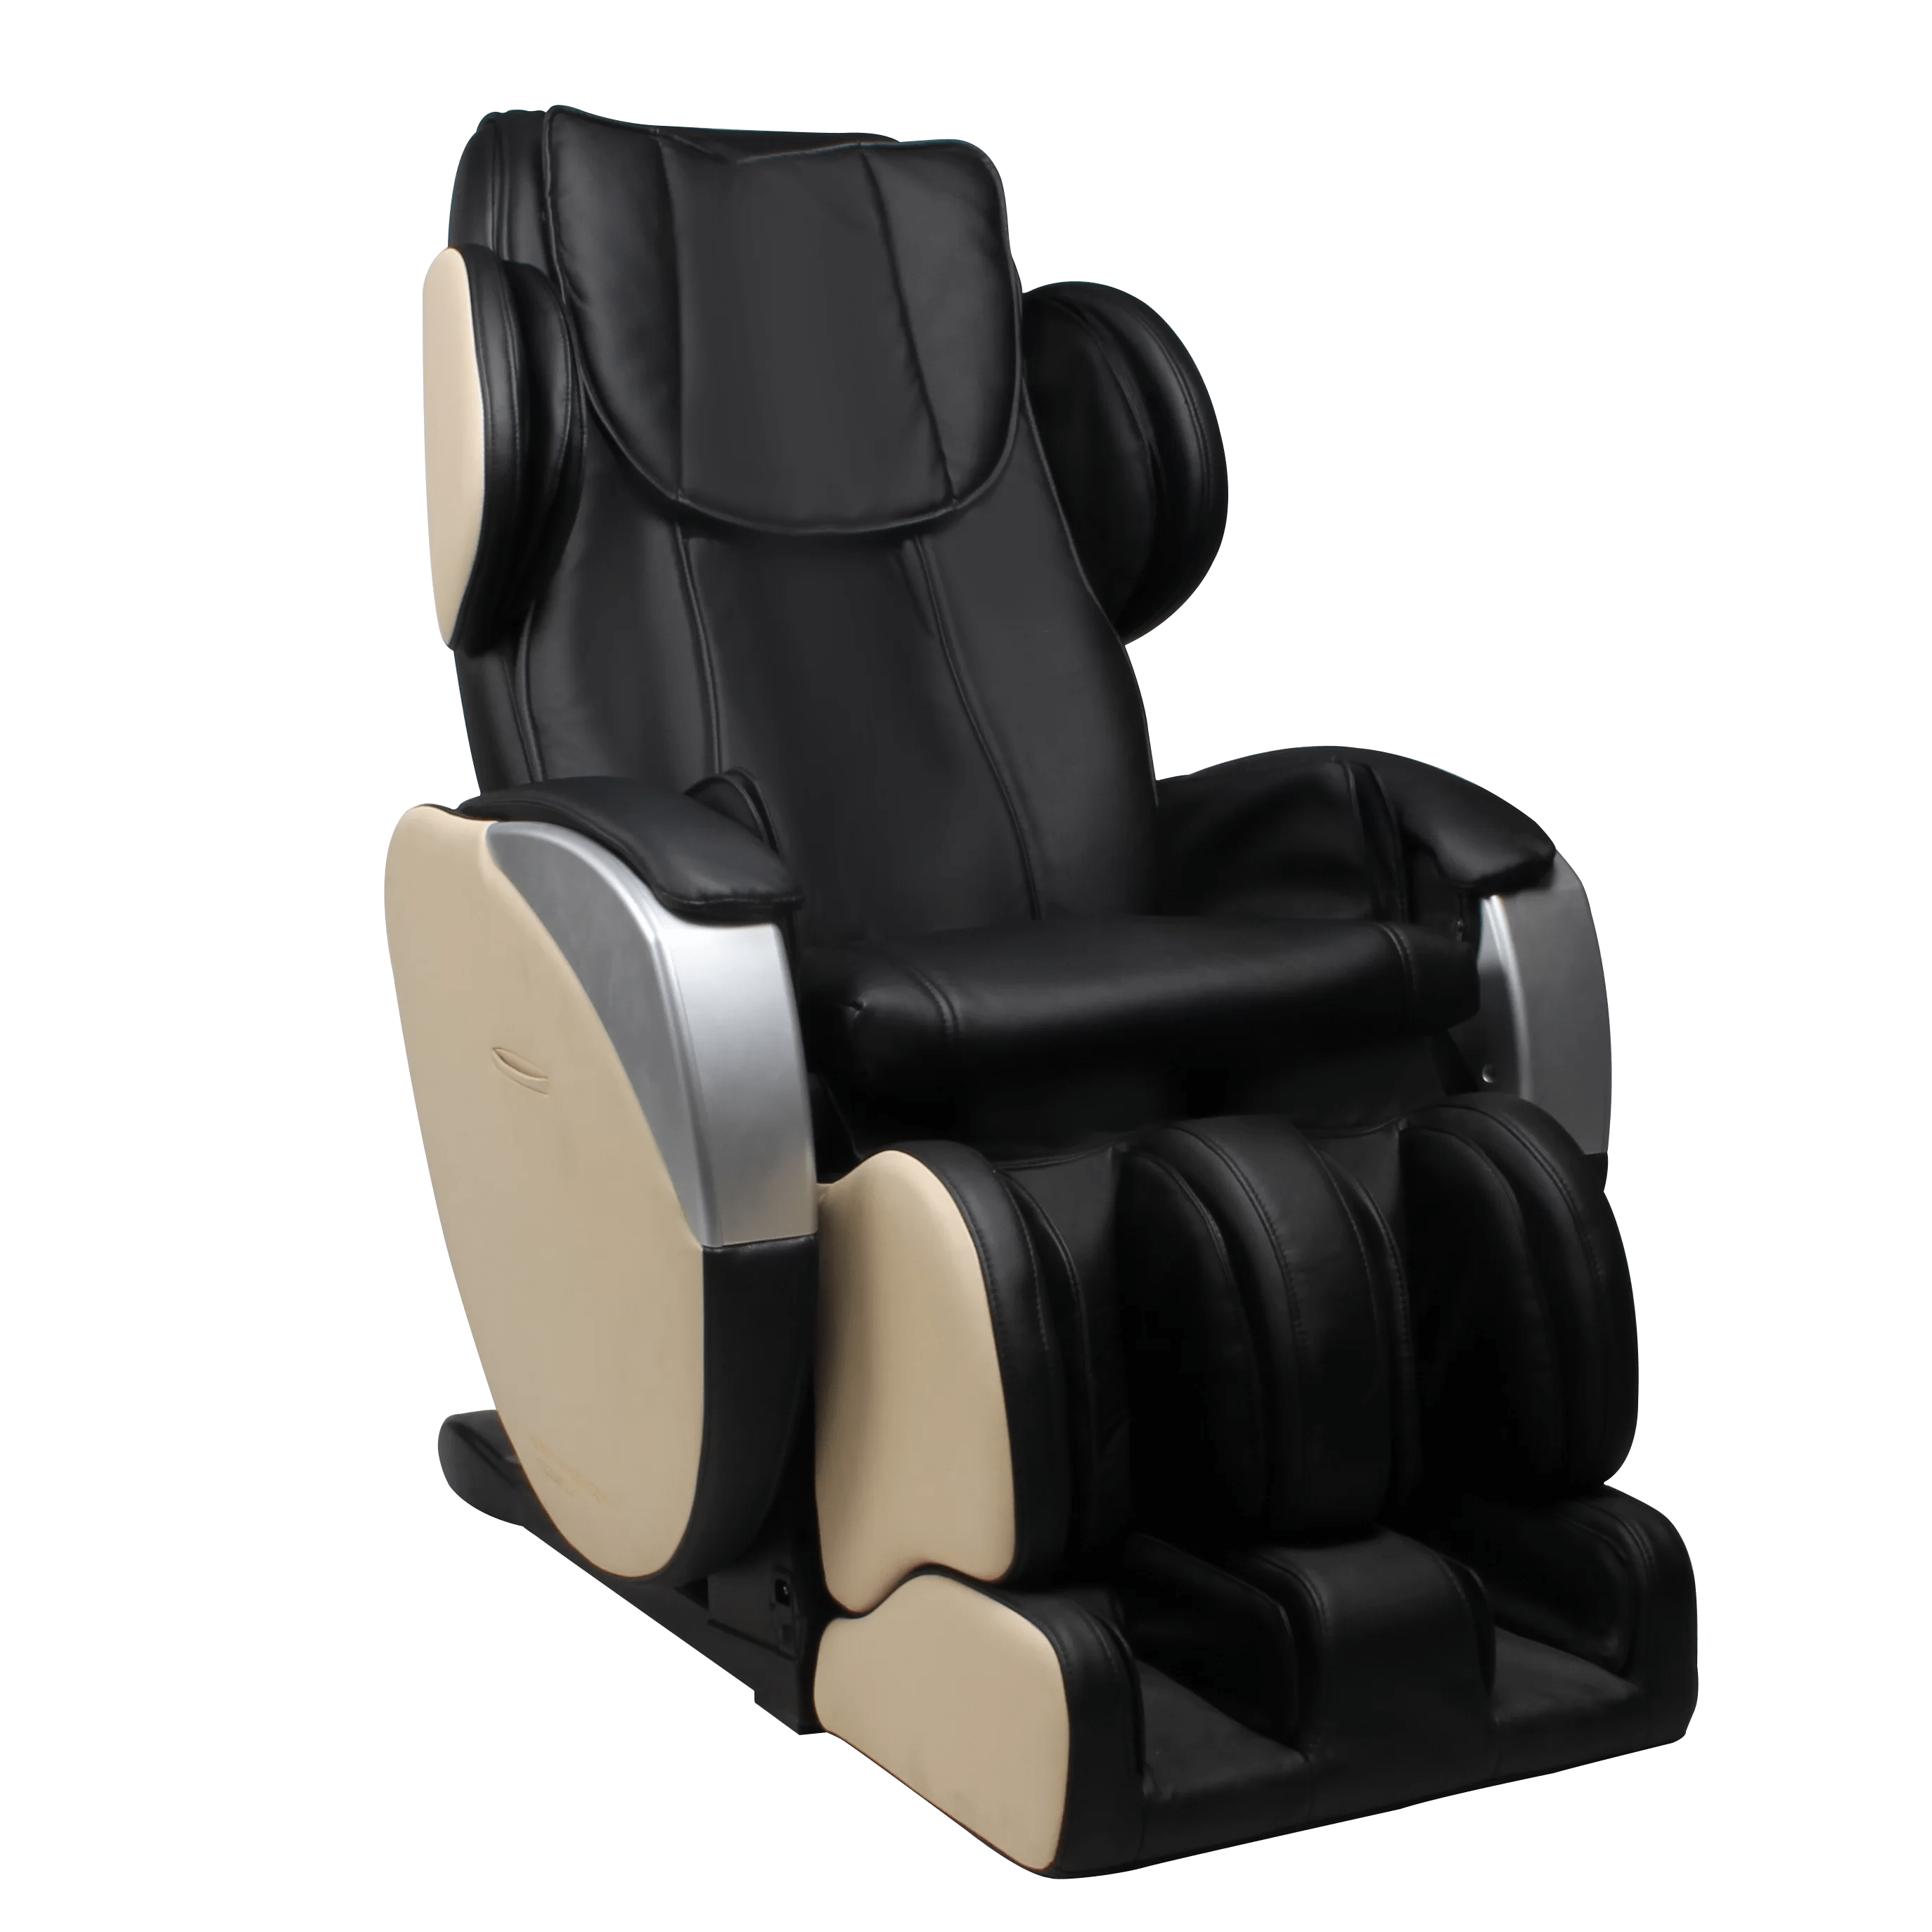 massage zero gravity chair swivel malaysia dynamic chairs santa monica edition